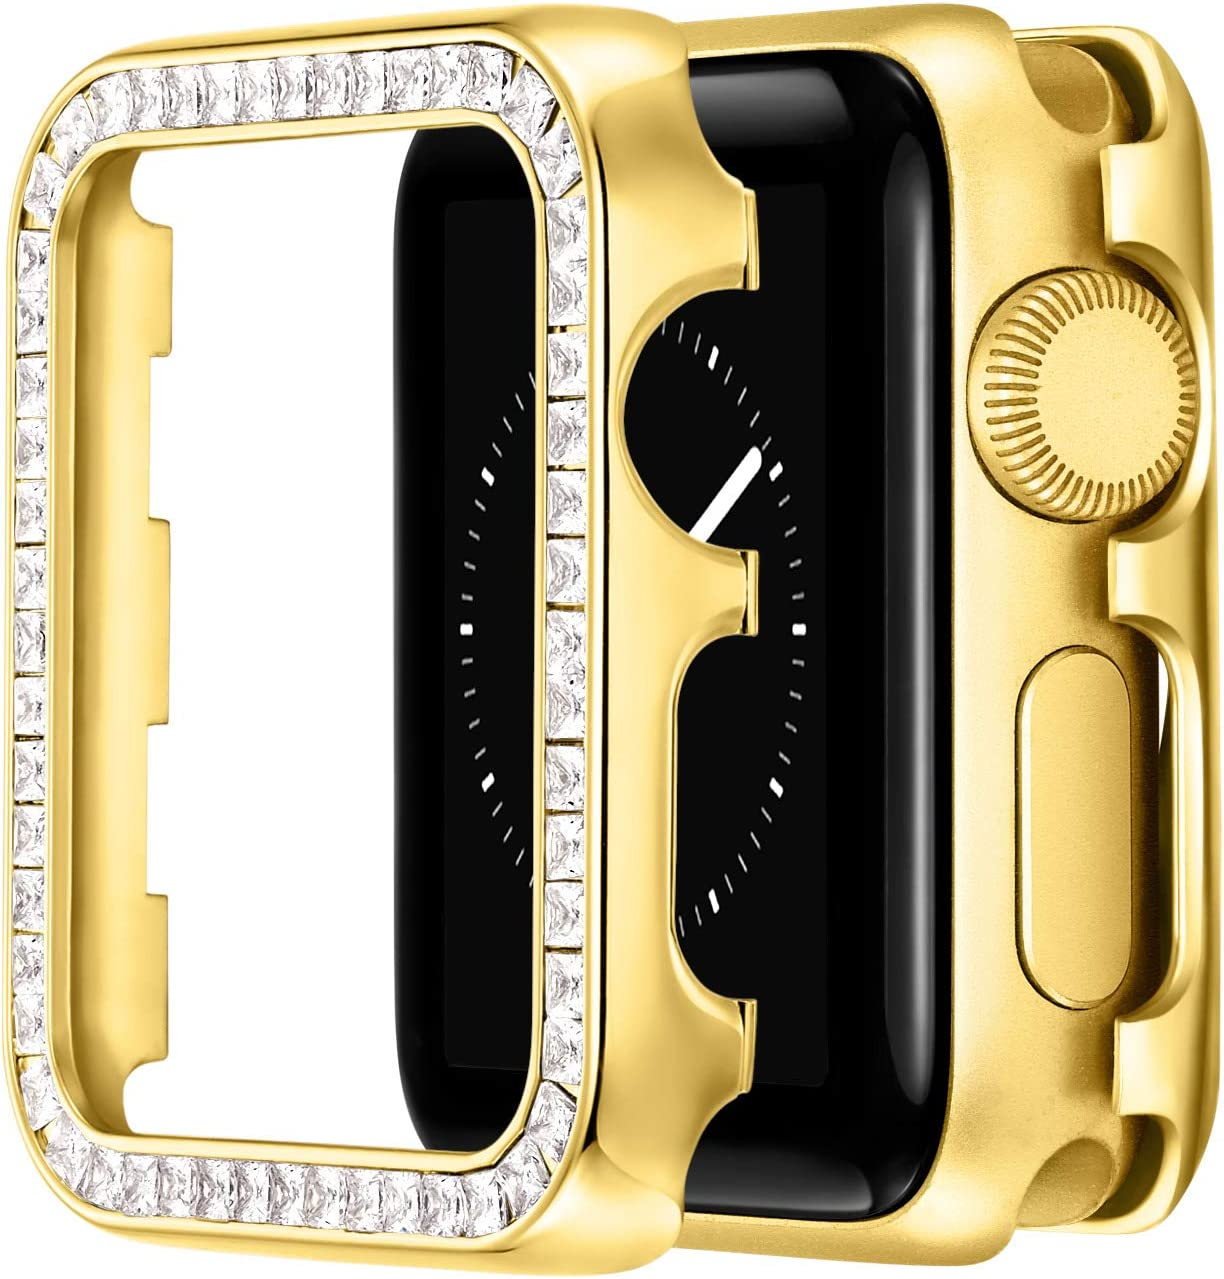 PROATL Compatible for Sparkling Apple Watch Case 42MM, Bling Protective Cases with Luxury Gorgeous Large Square Crystal Diamond with Gift Box for iWatch Series 3/2 (Diamond/ Yellow Gold)